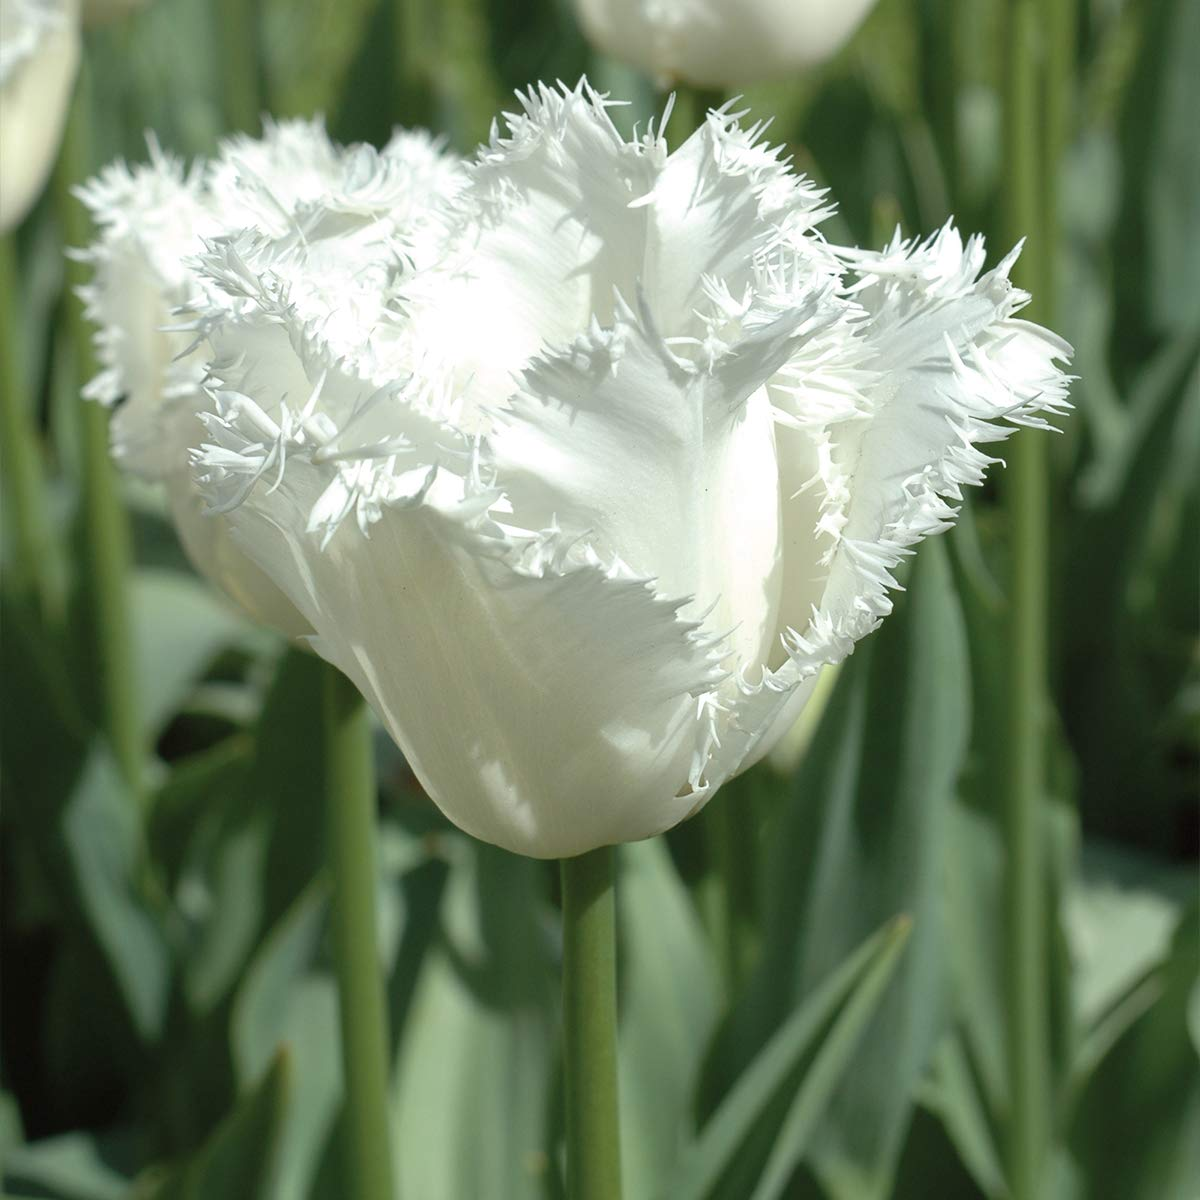 Pink /& Rose Burpee Foxtrot Tulip 10 Large Flowering Fall Bulbs for Planting